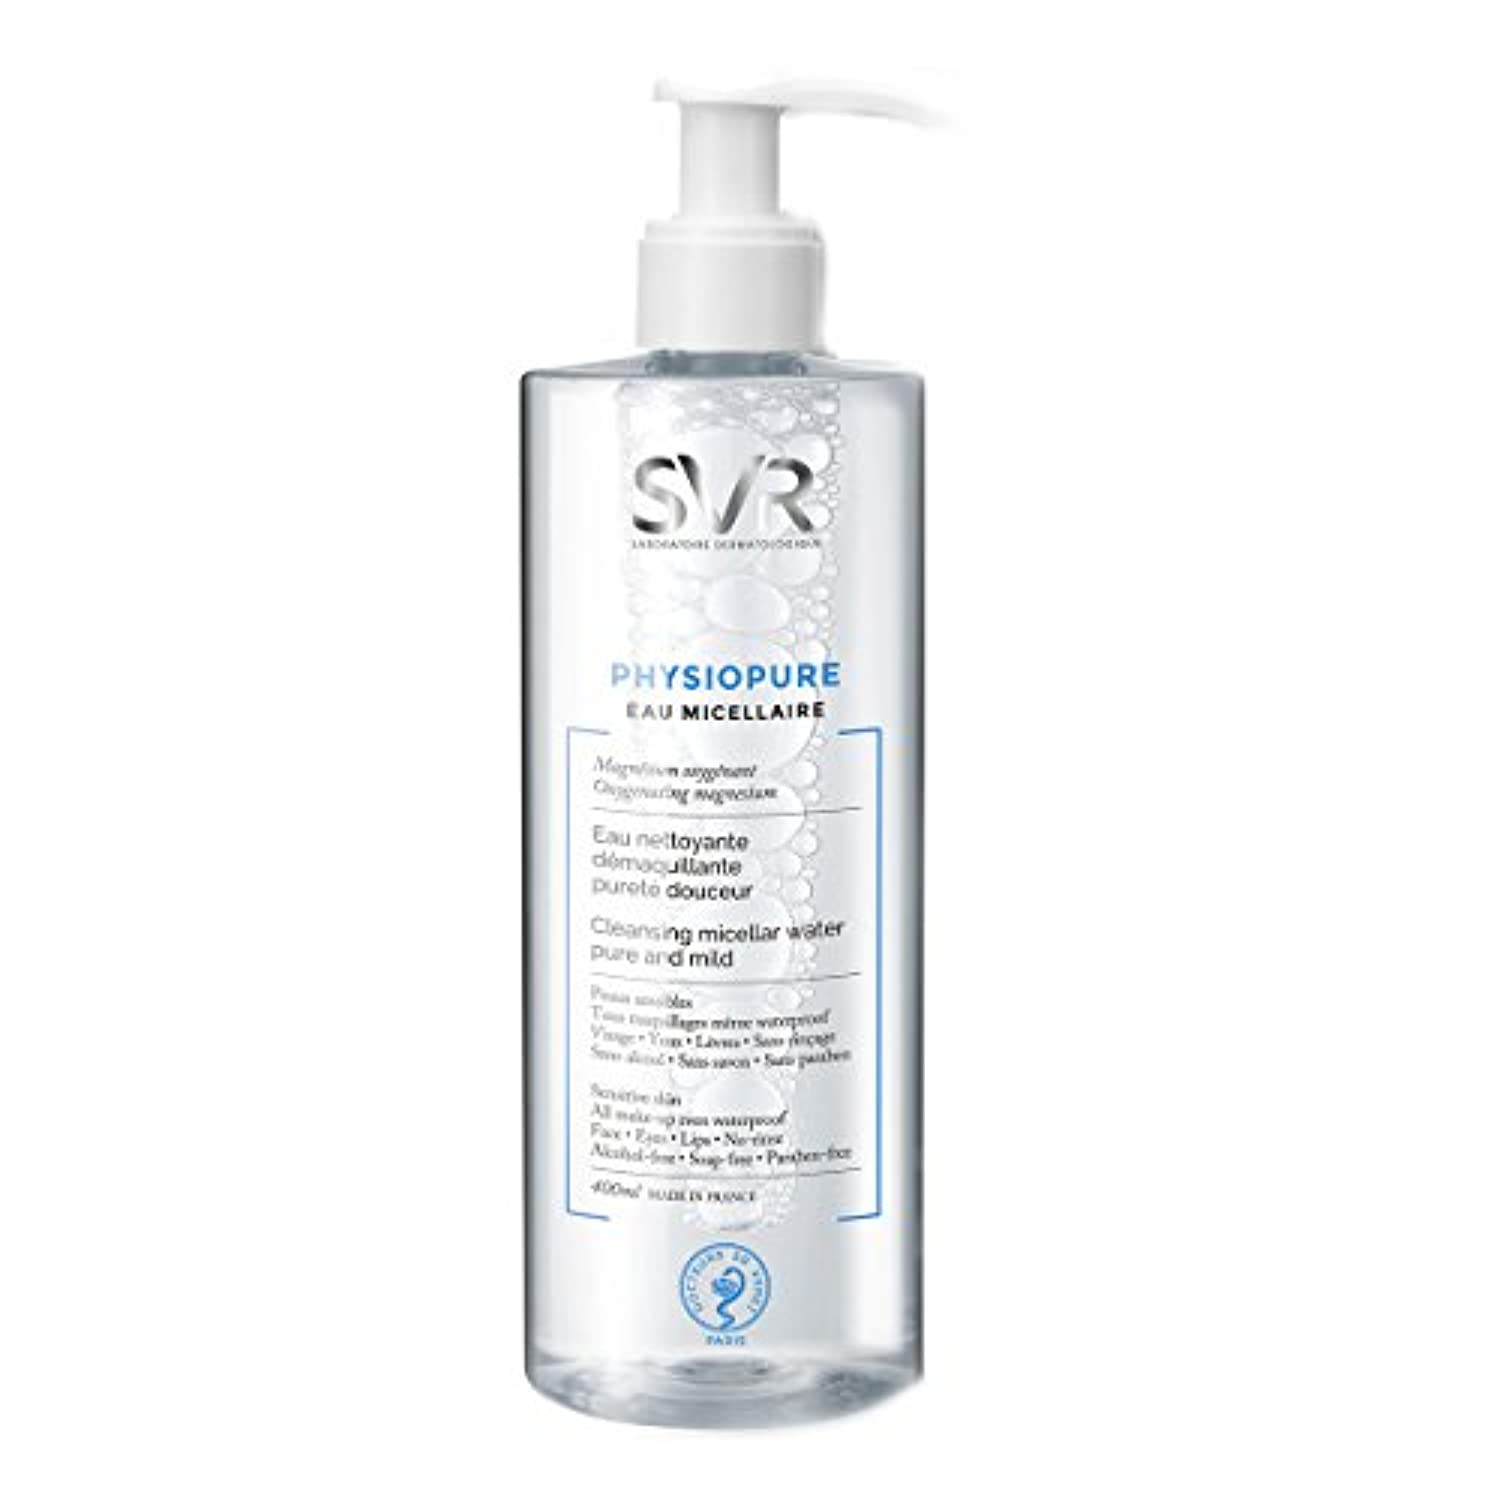 Svr Physiopure Cleansing Micellar Water 400ml [並行輸入品]